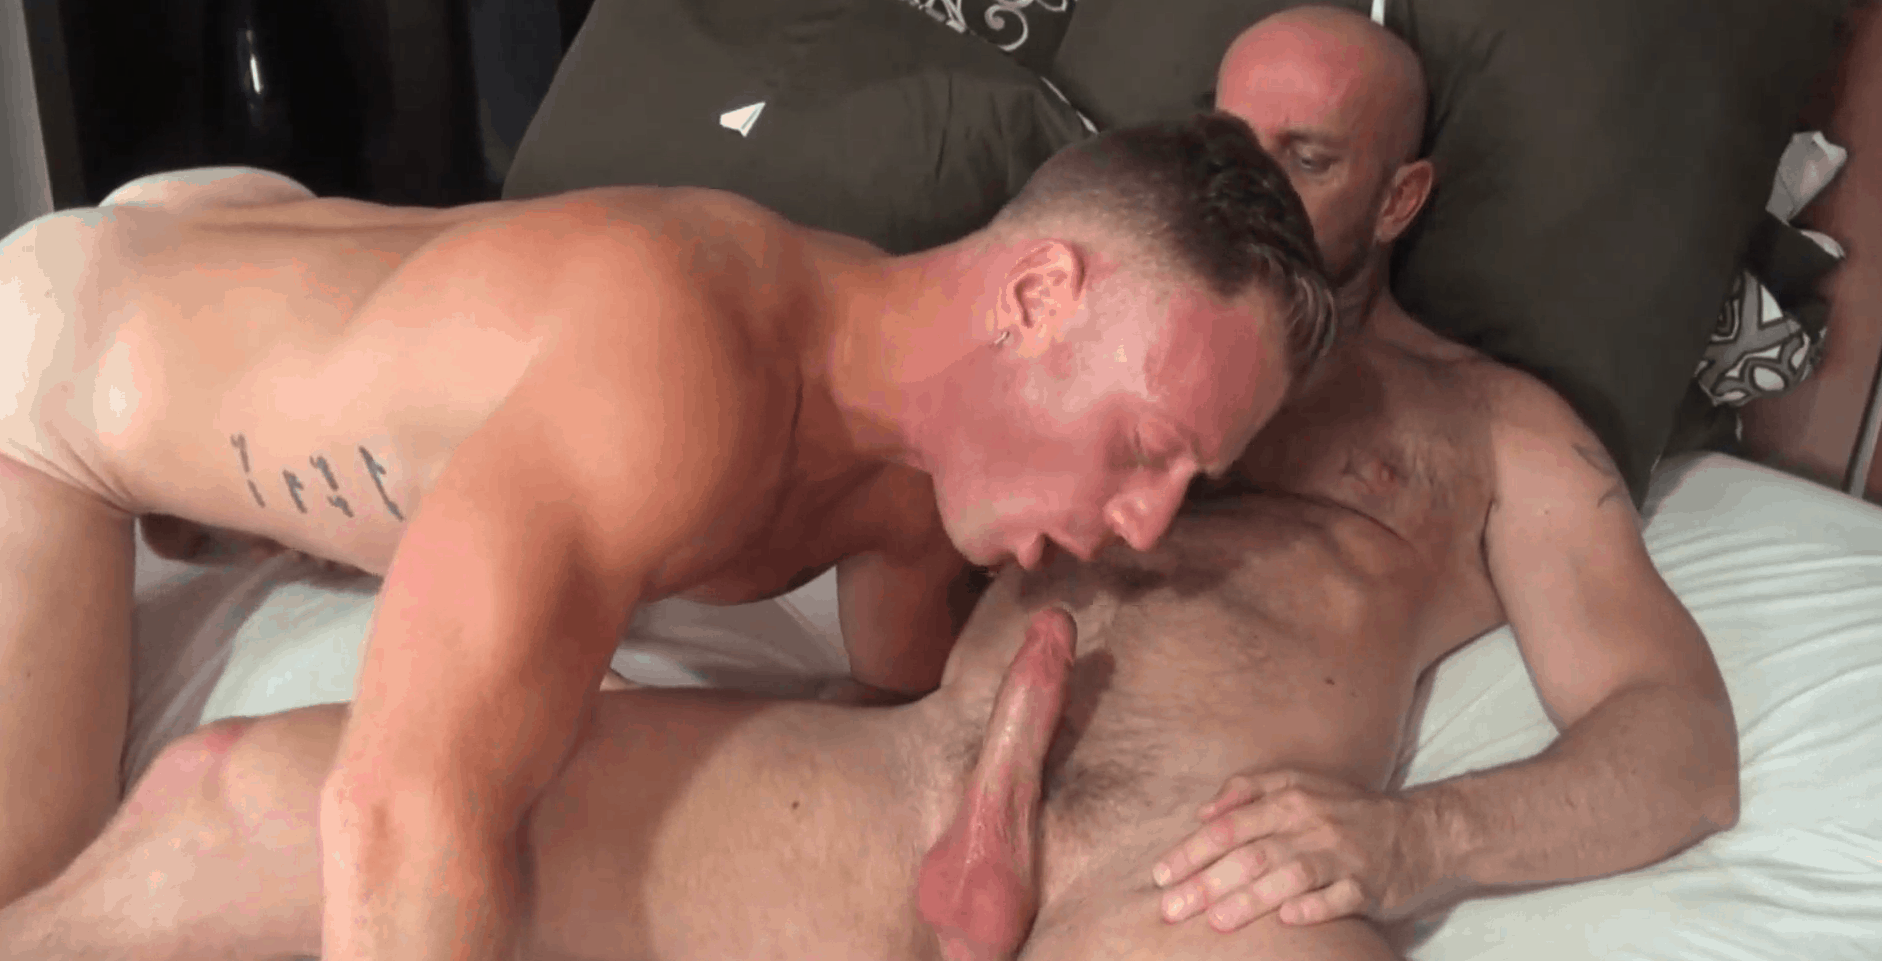 Deepthroat blowjob of young gay twink in bed